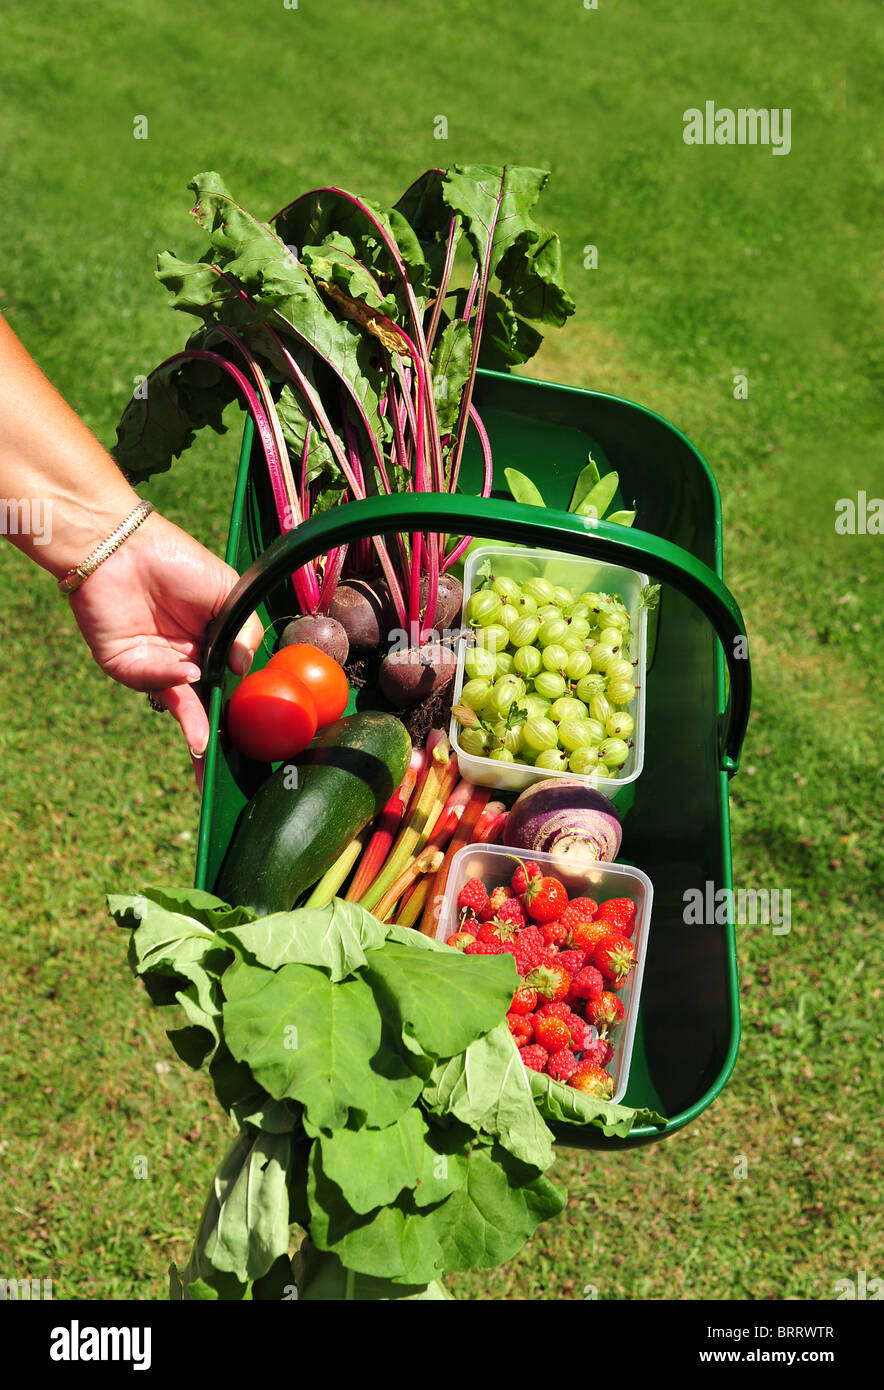 Gardeners hand with trug full of fresh fruit and vegetables. - Stock Image